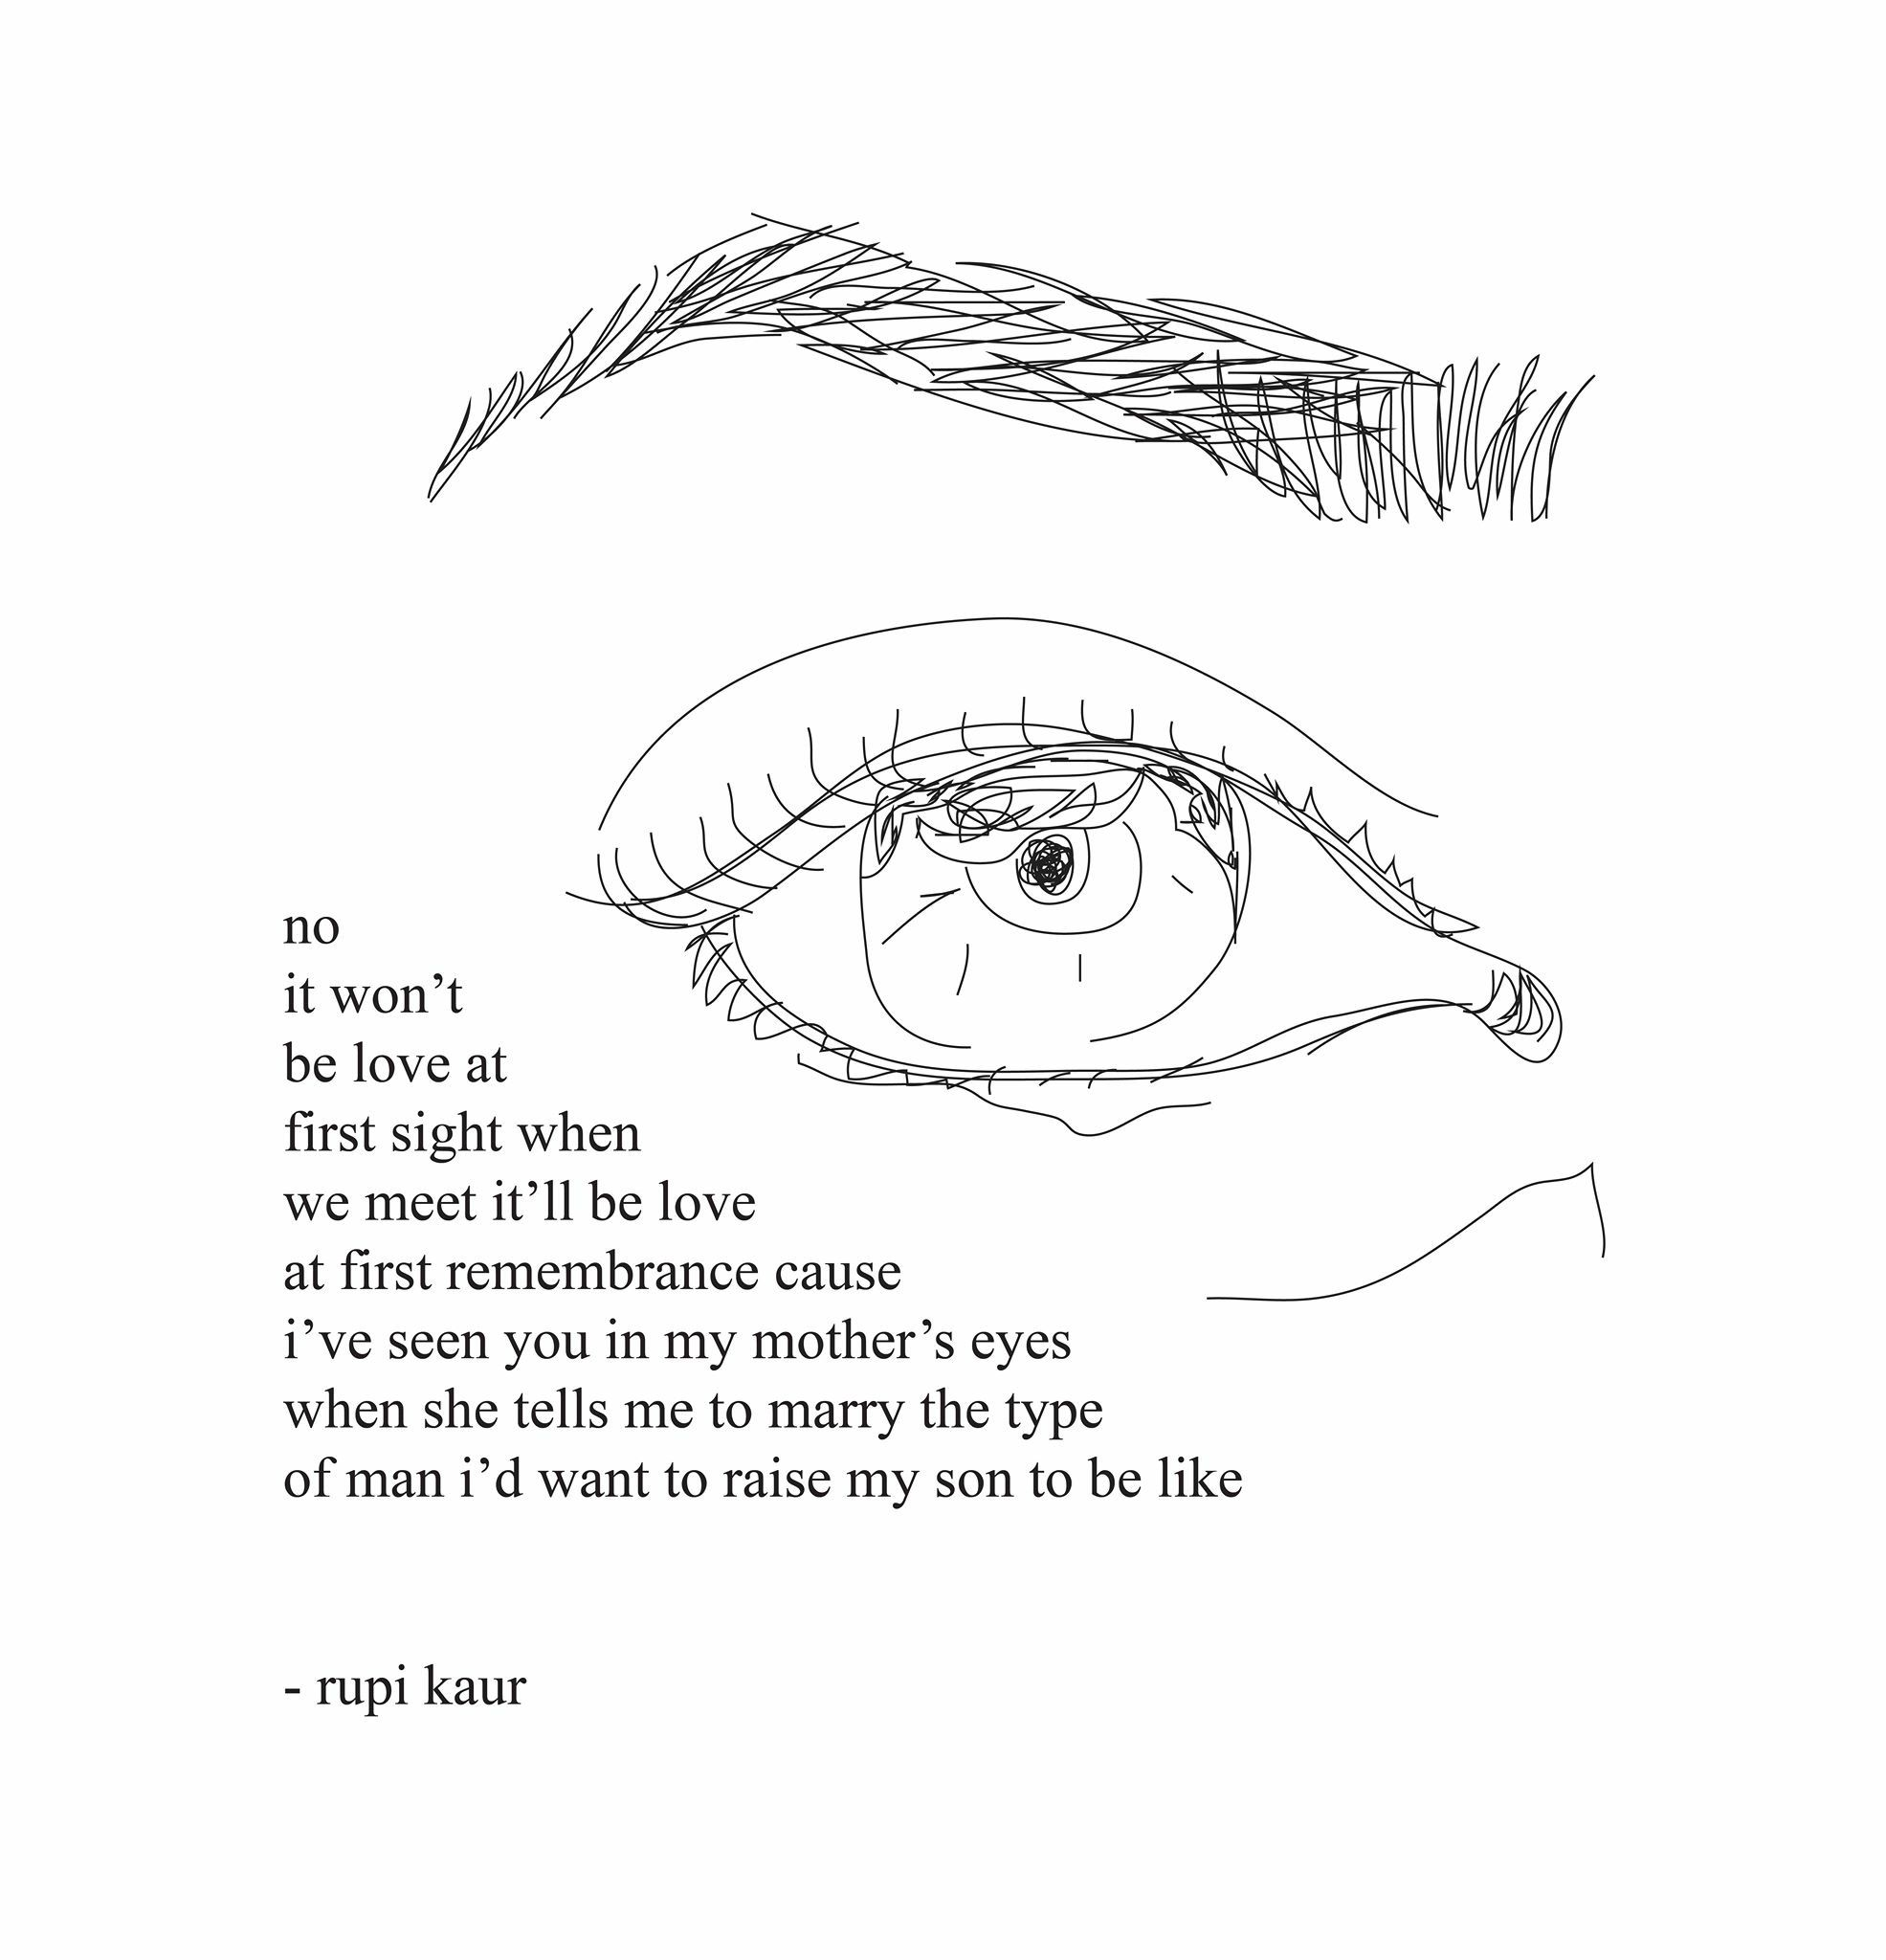 Rupi Kaur Quotes Image Result For Rupi Kaur Quotes  Loveee  Pinterest  Rupi Kaur